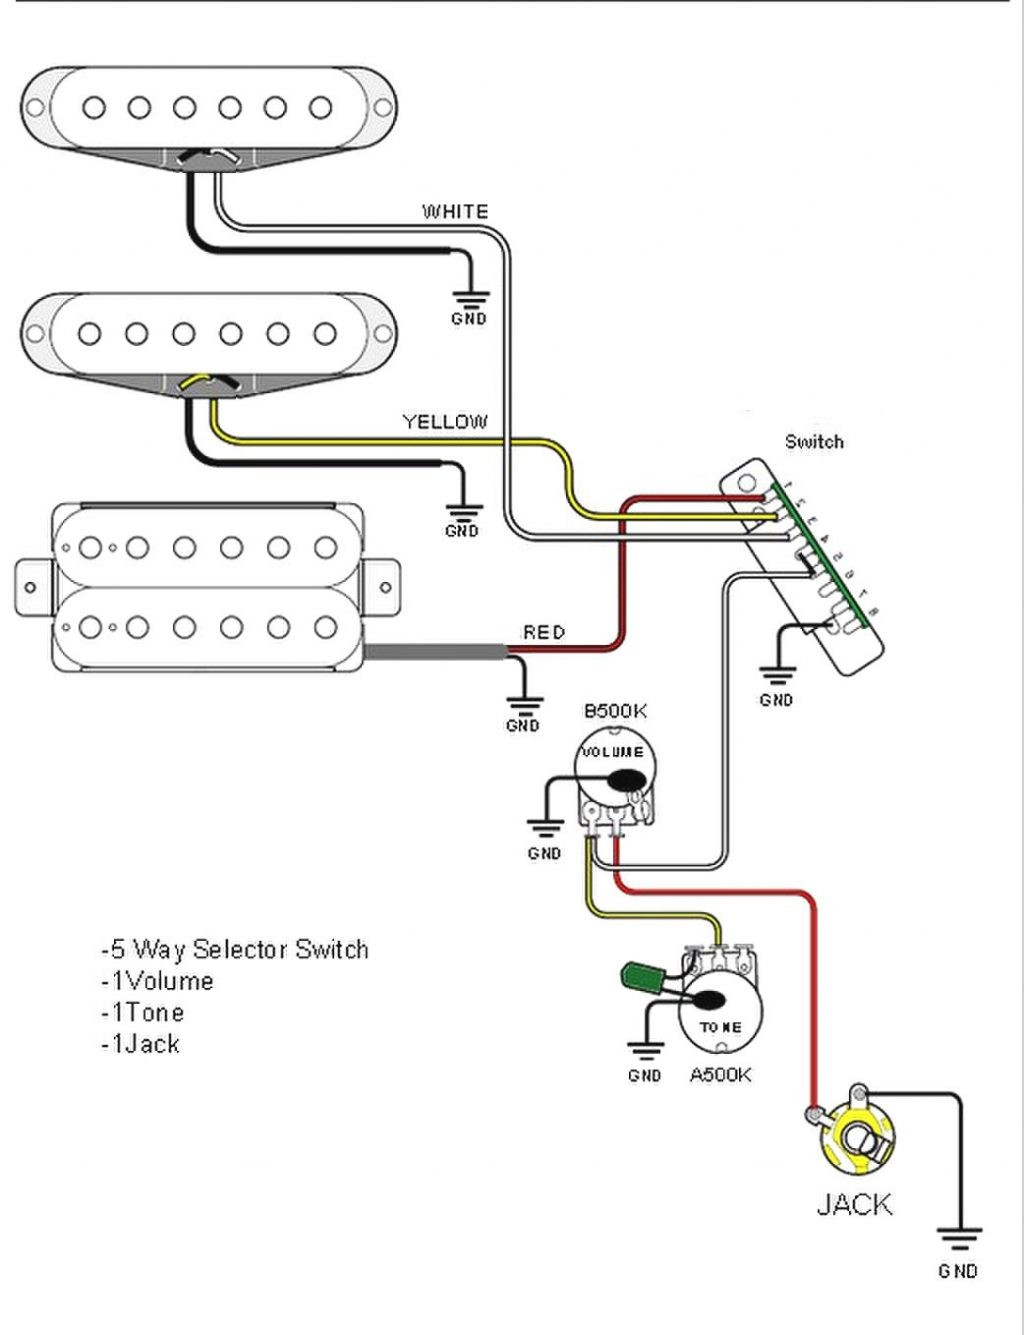 Wiring Diagram Wiring Diagram Guitar Jack Ibanez Cabinet For Speaker Pedal 4x12 Tone Control Way Selector